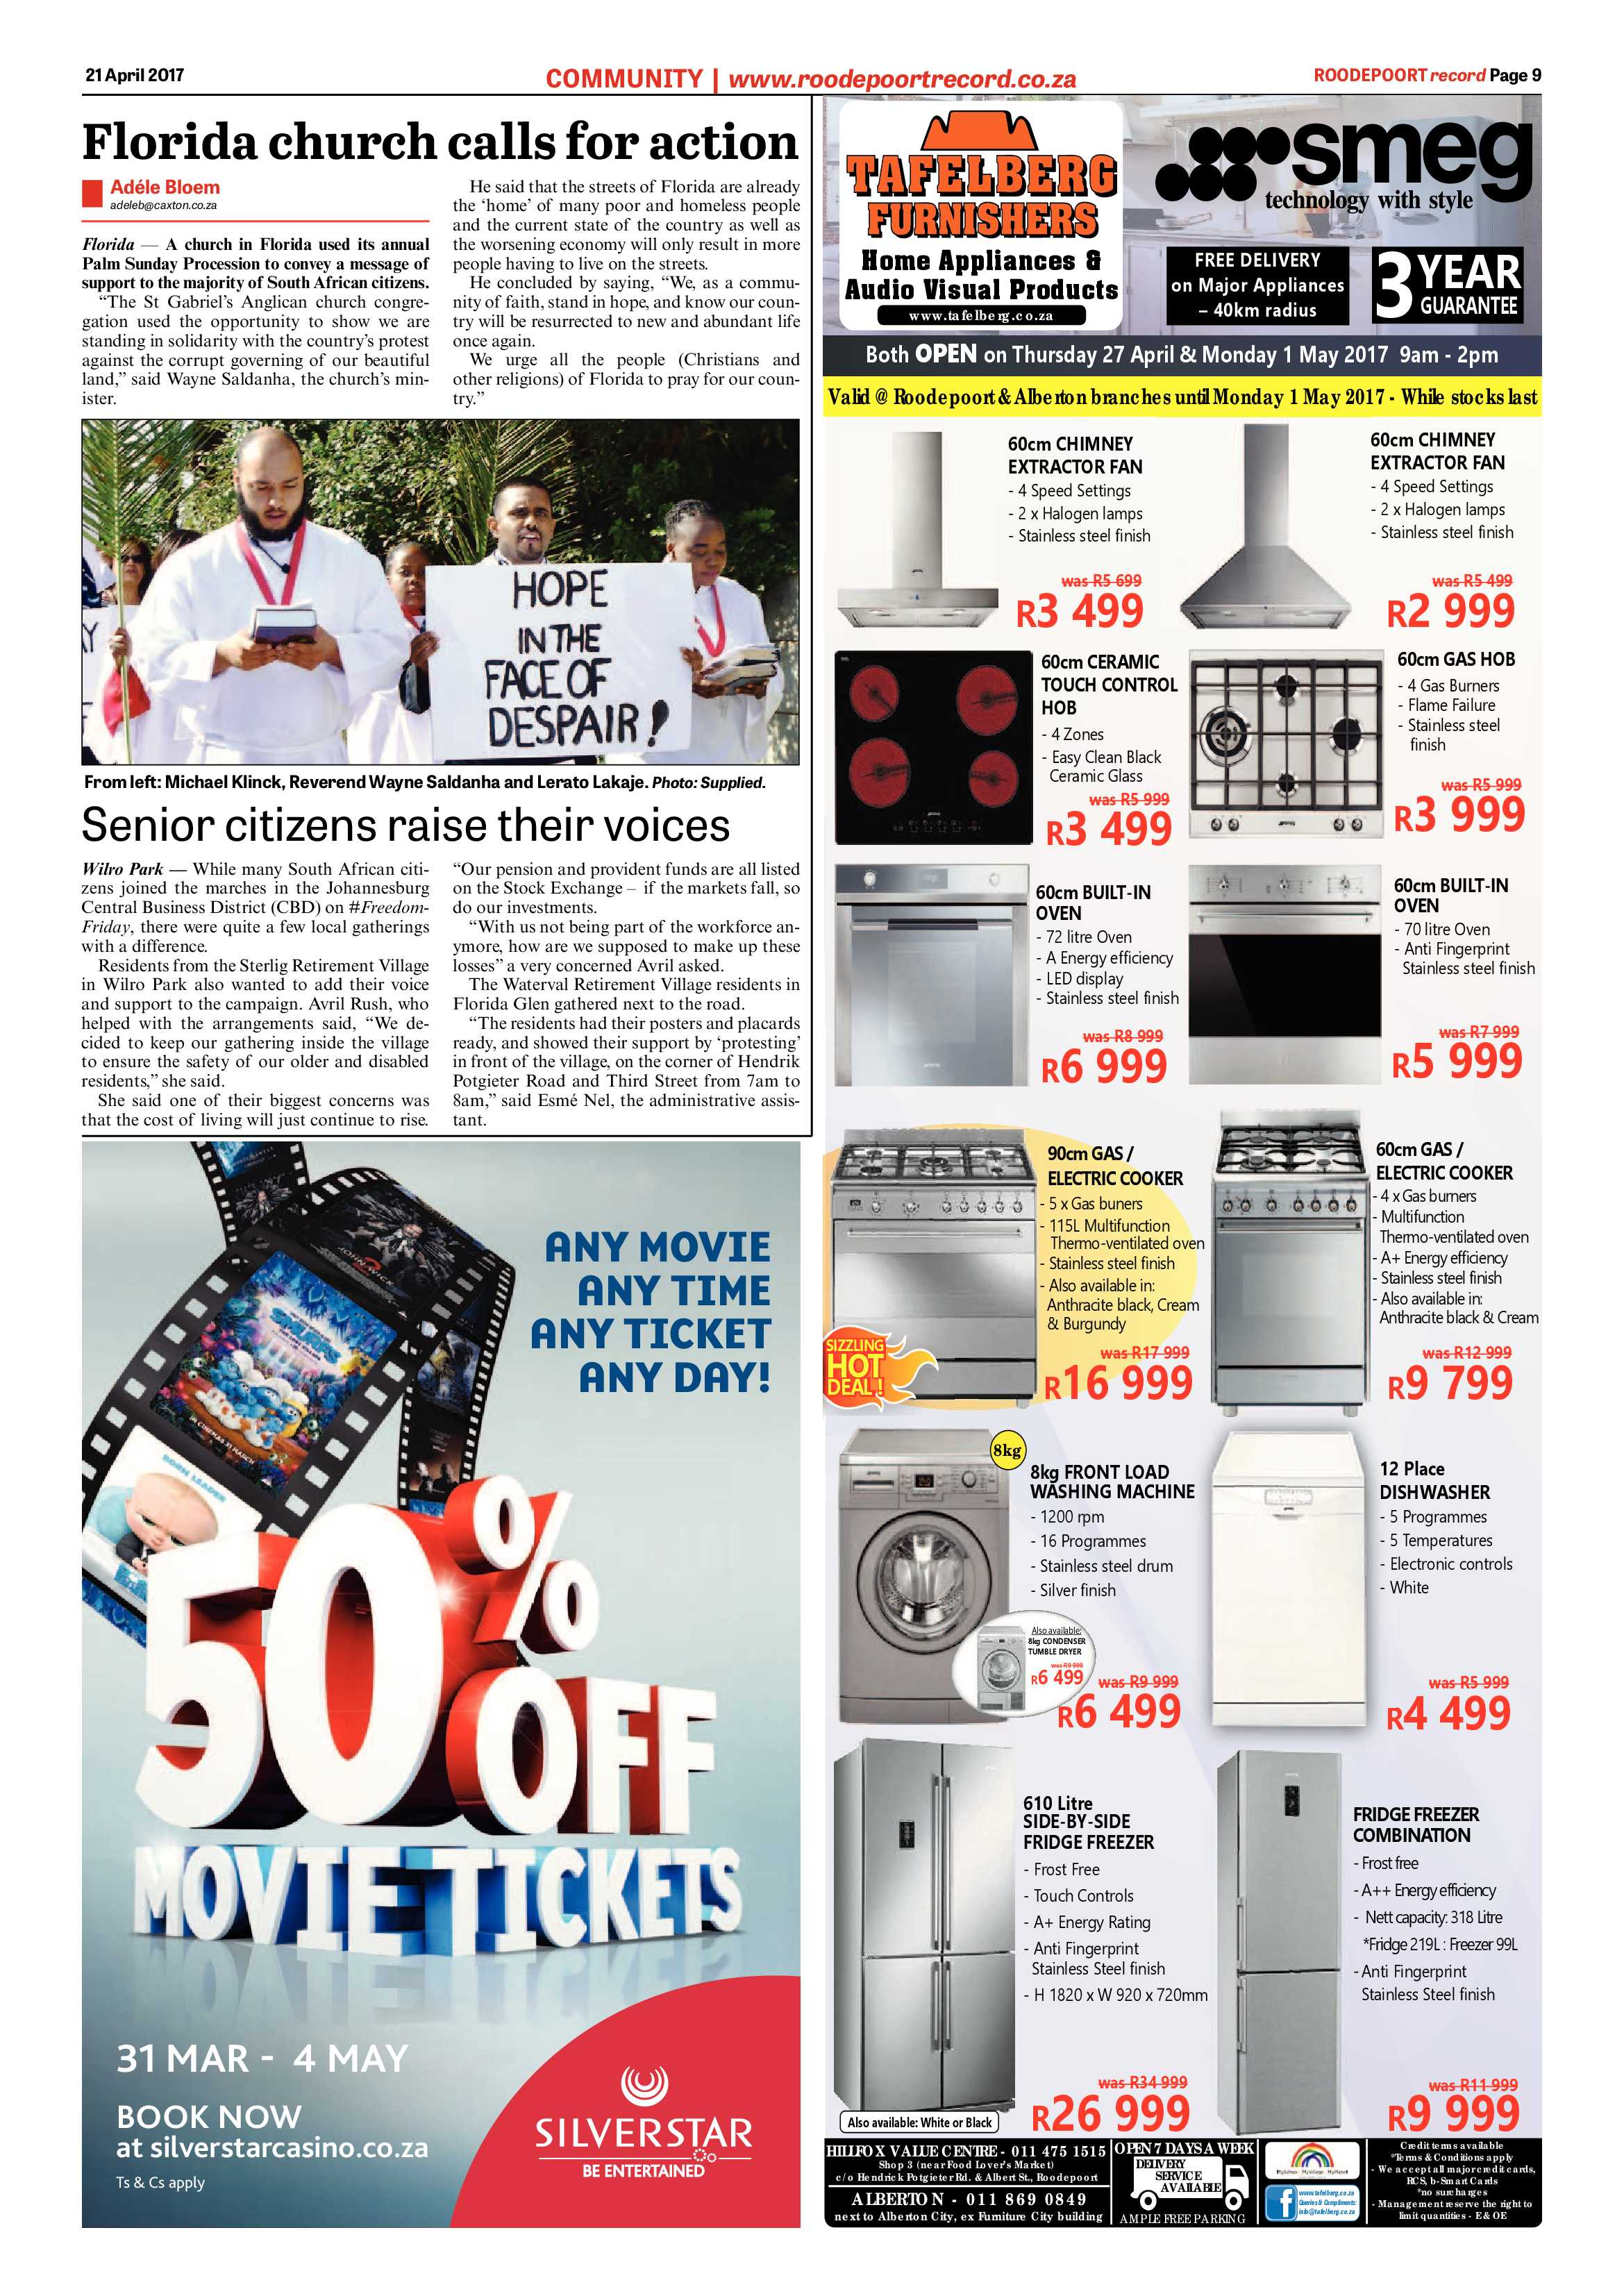 roodepoort-record-21-april-2017-epapers-page-9